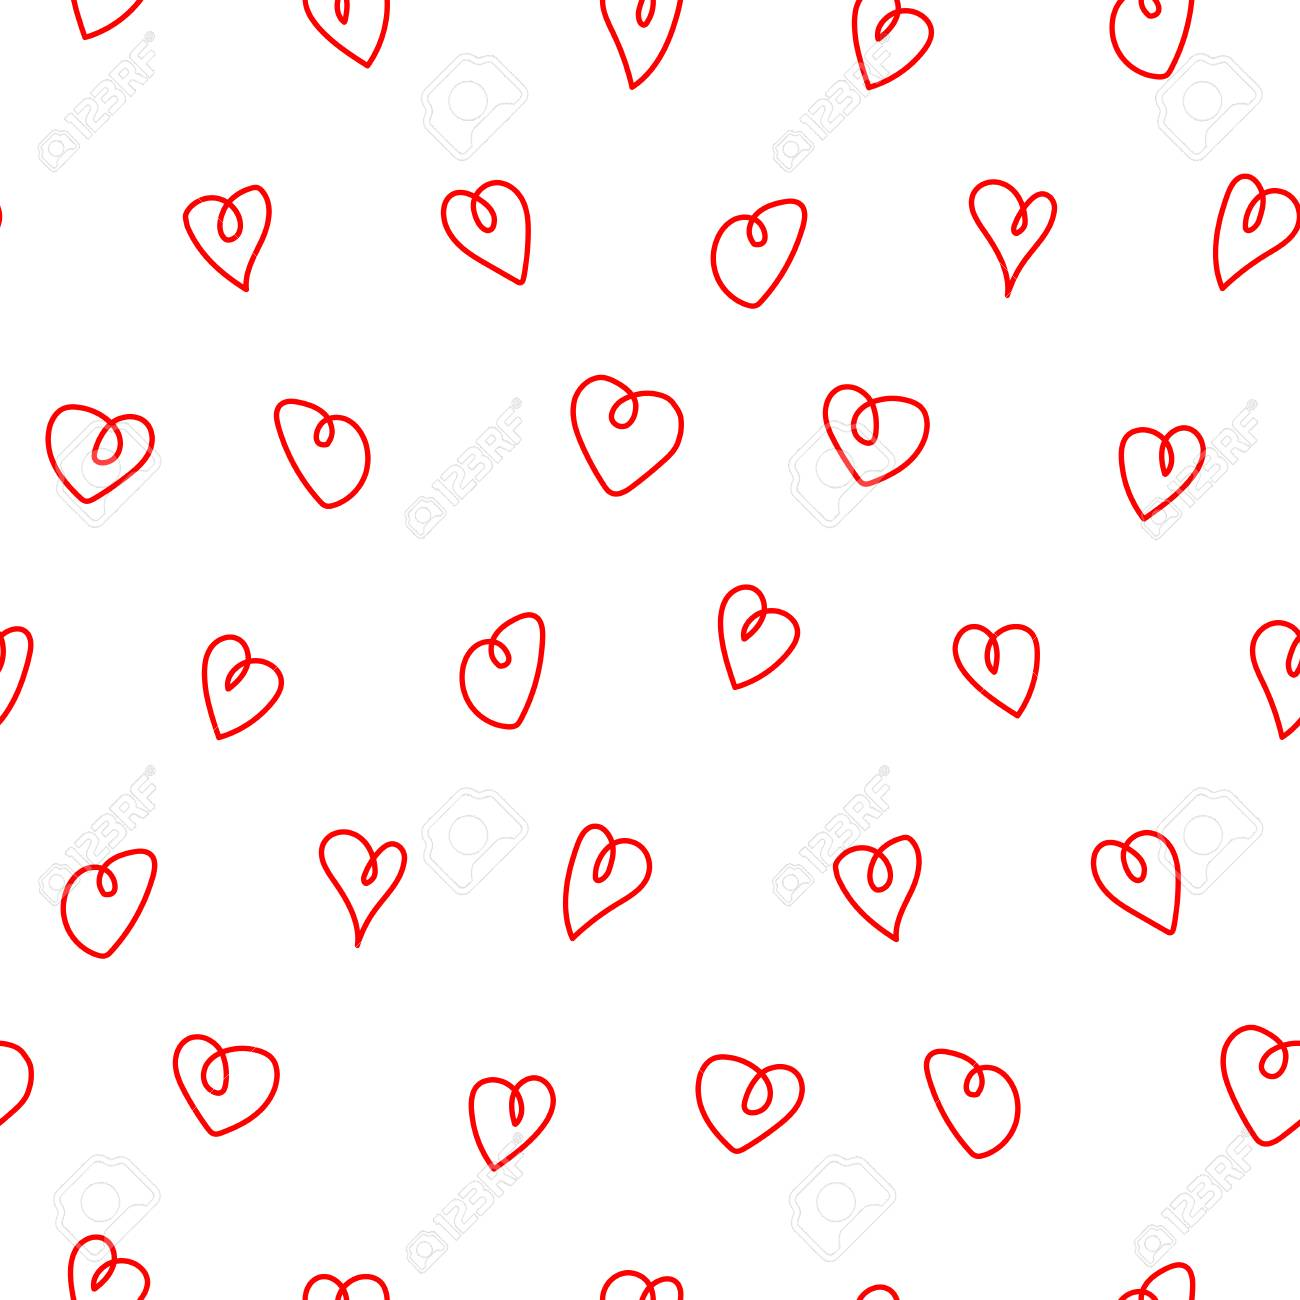 Hand Drawn Seamless Vector Pattern With Red Hearts Doodles On Royalty Free Cliparts Vectors And Stock Illustration Image 94844393